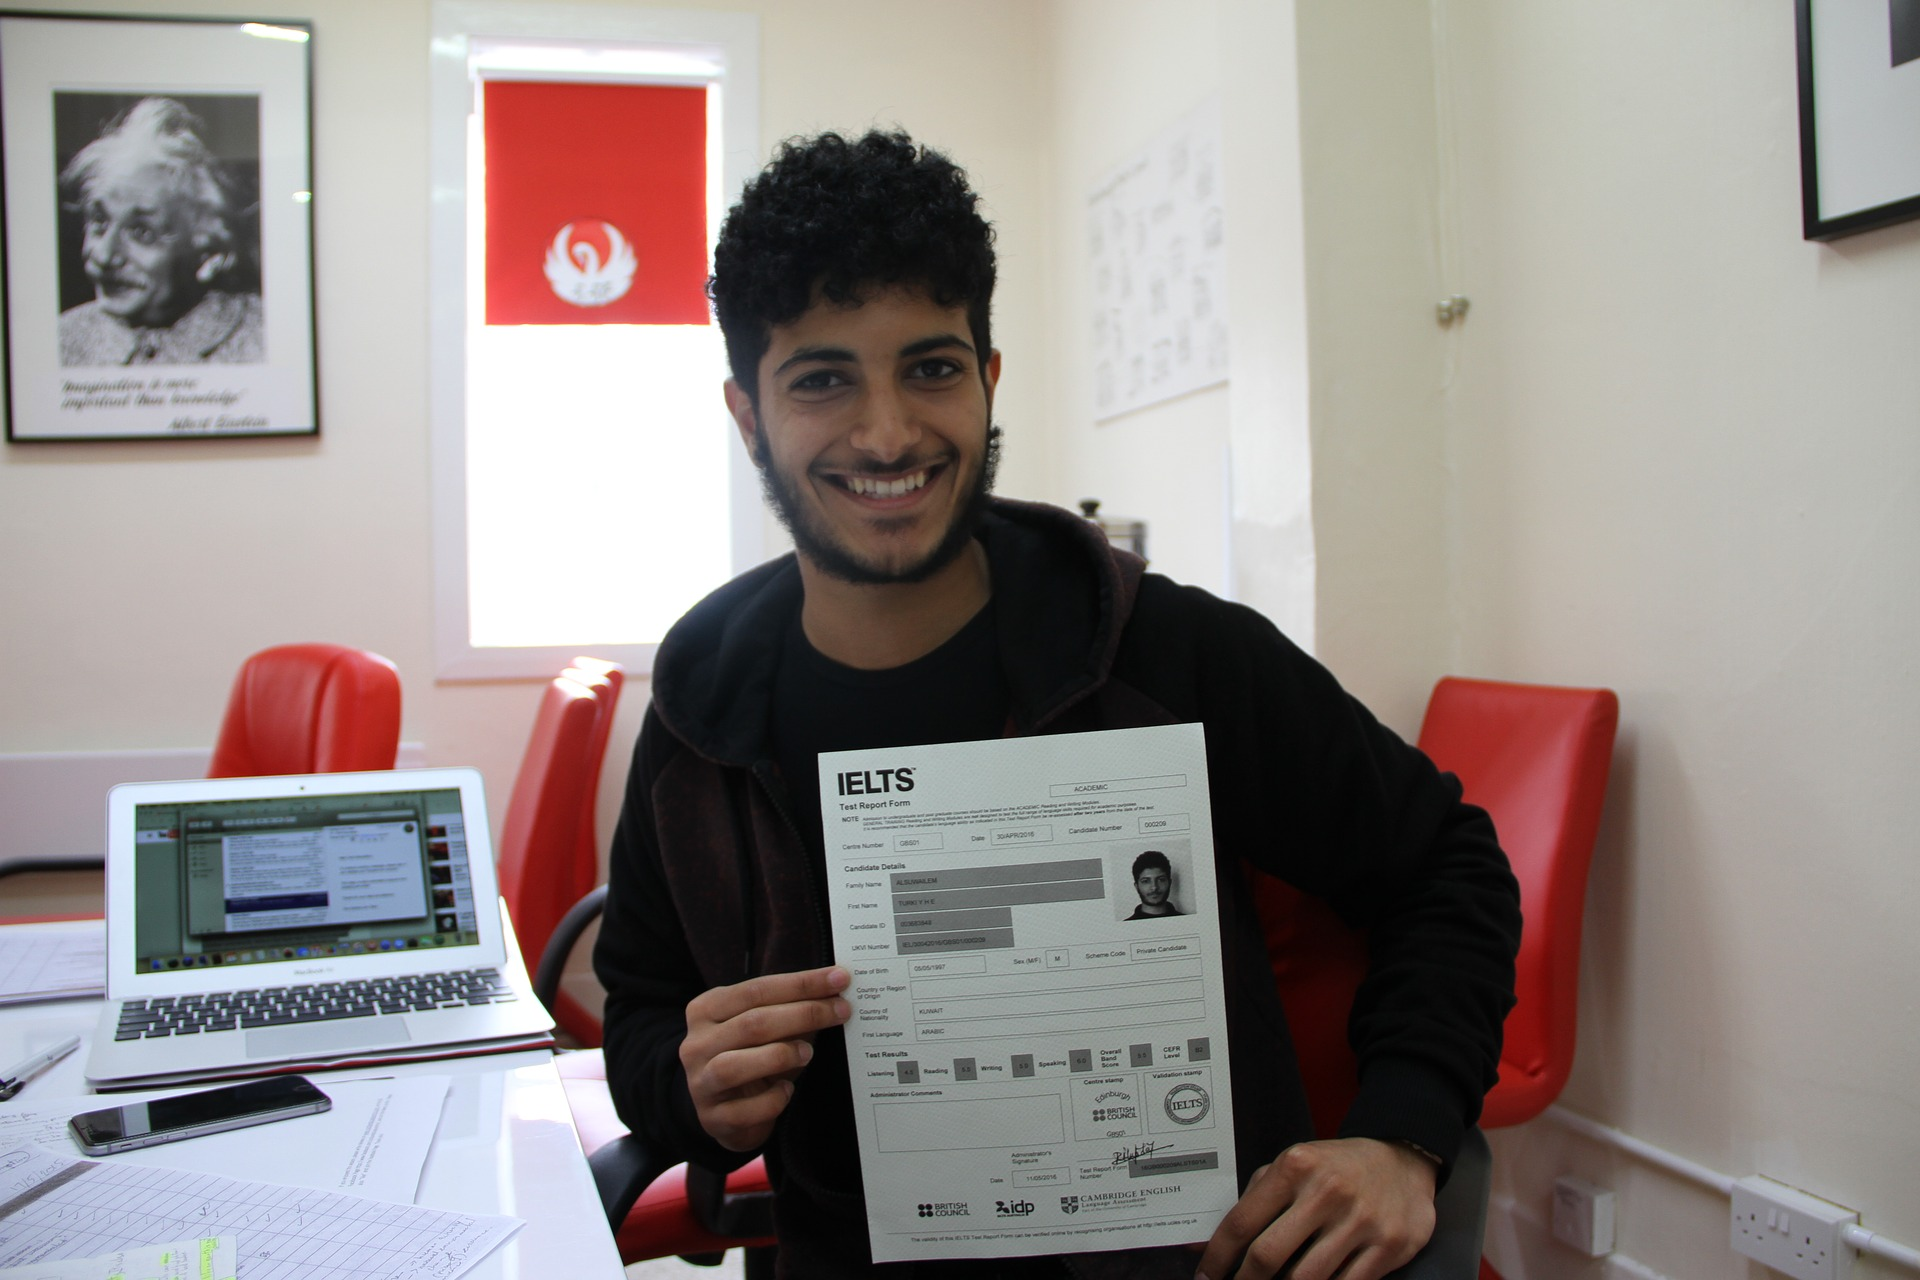 a boy with showing IELTS application form in hand